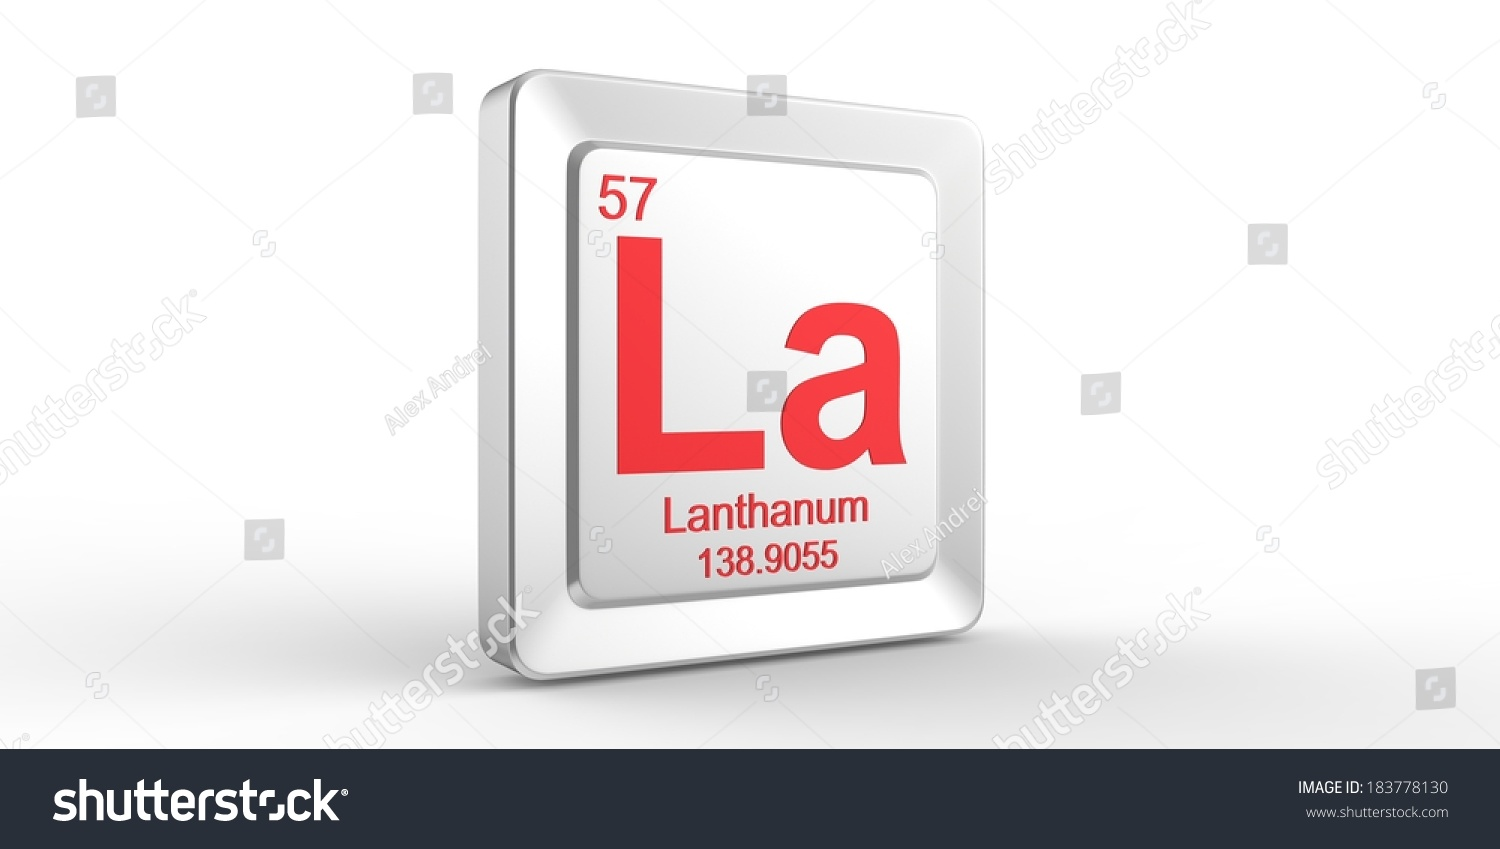 La symbol 57 material lanthanum chemical stock illustration la symbol 57 material for lanthanum chemical element of the periodic table gamestrikefo Gallery